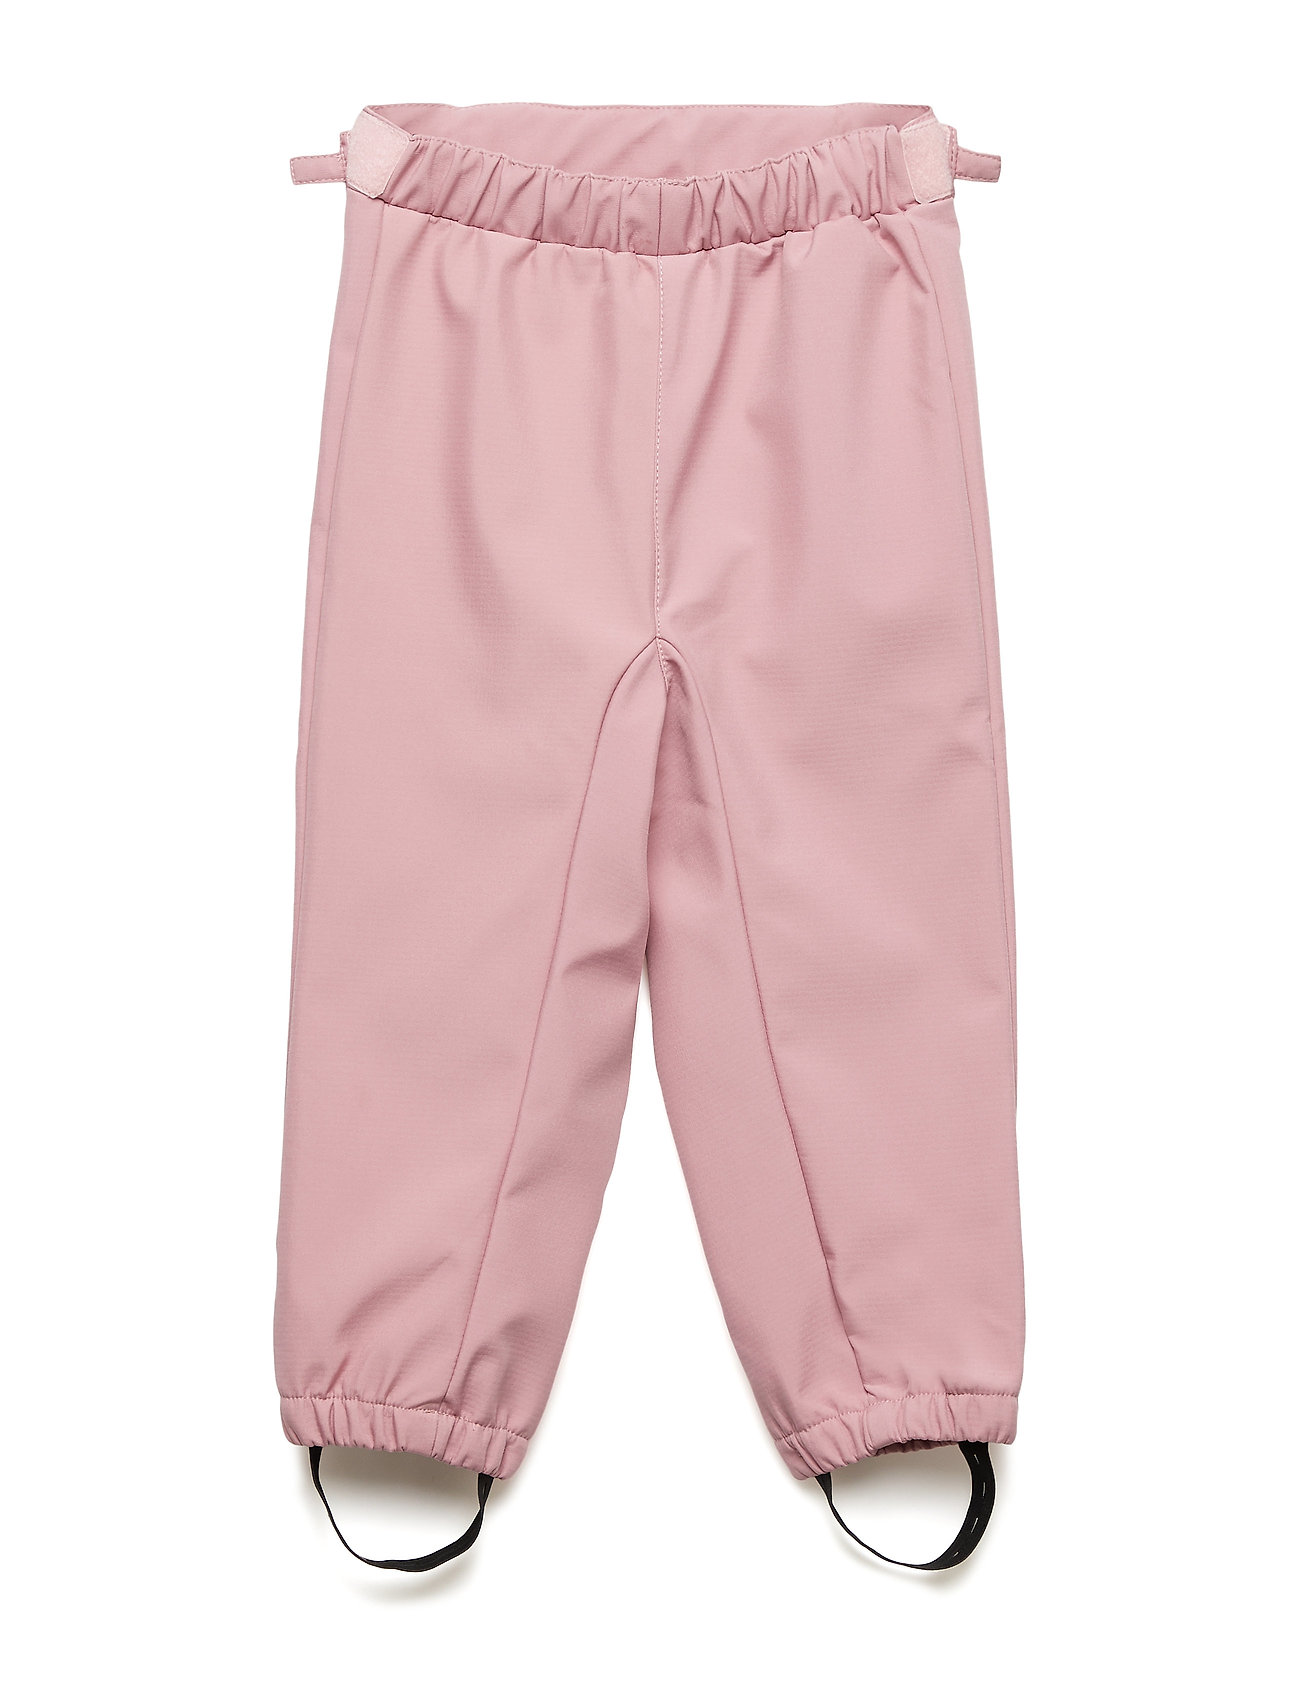 Mini A Ture Aian Pants, M - LILAS ROSE